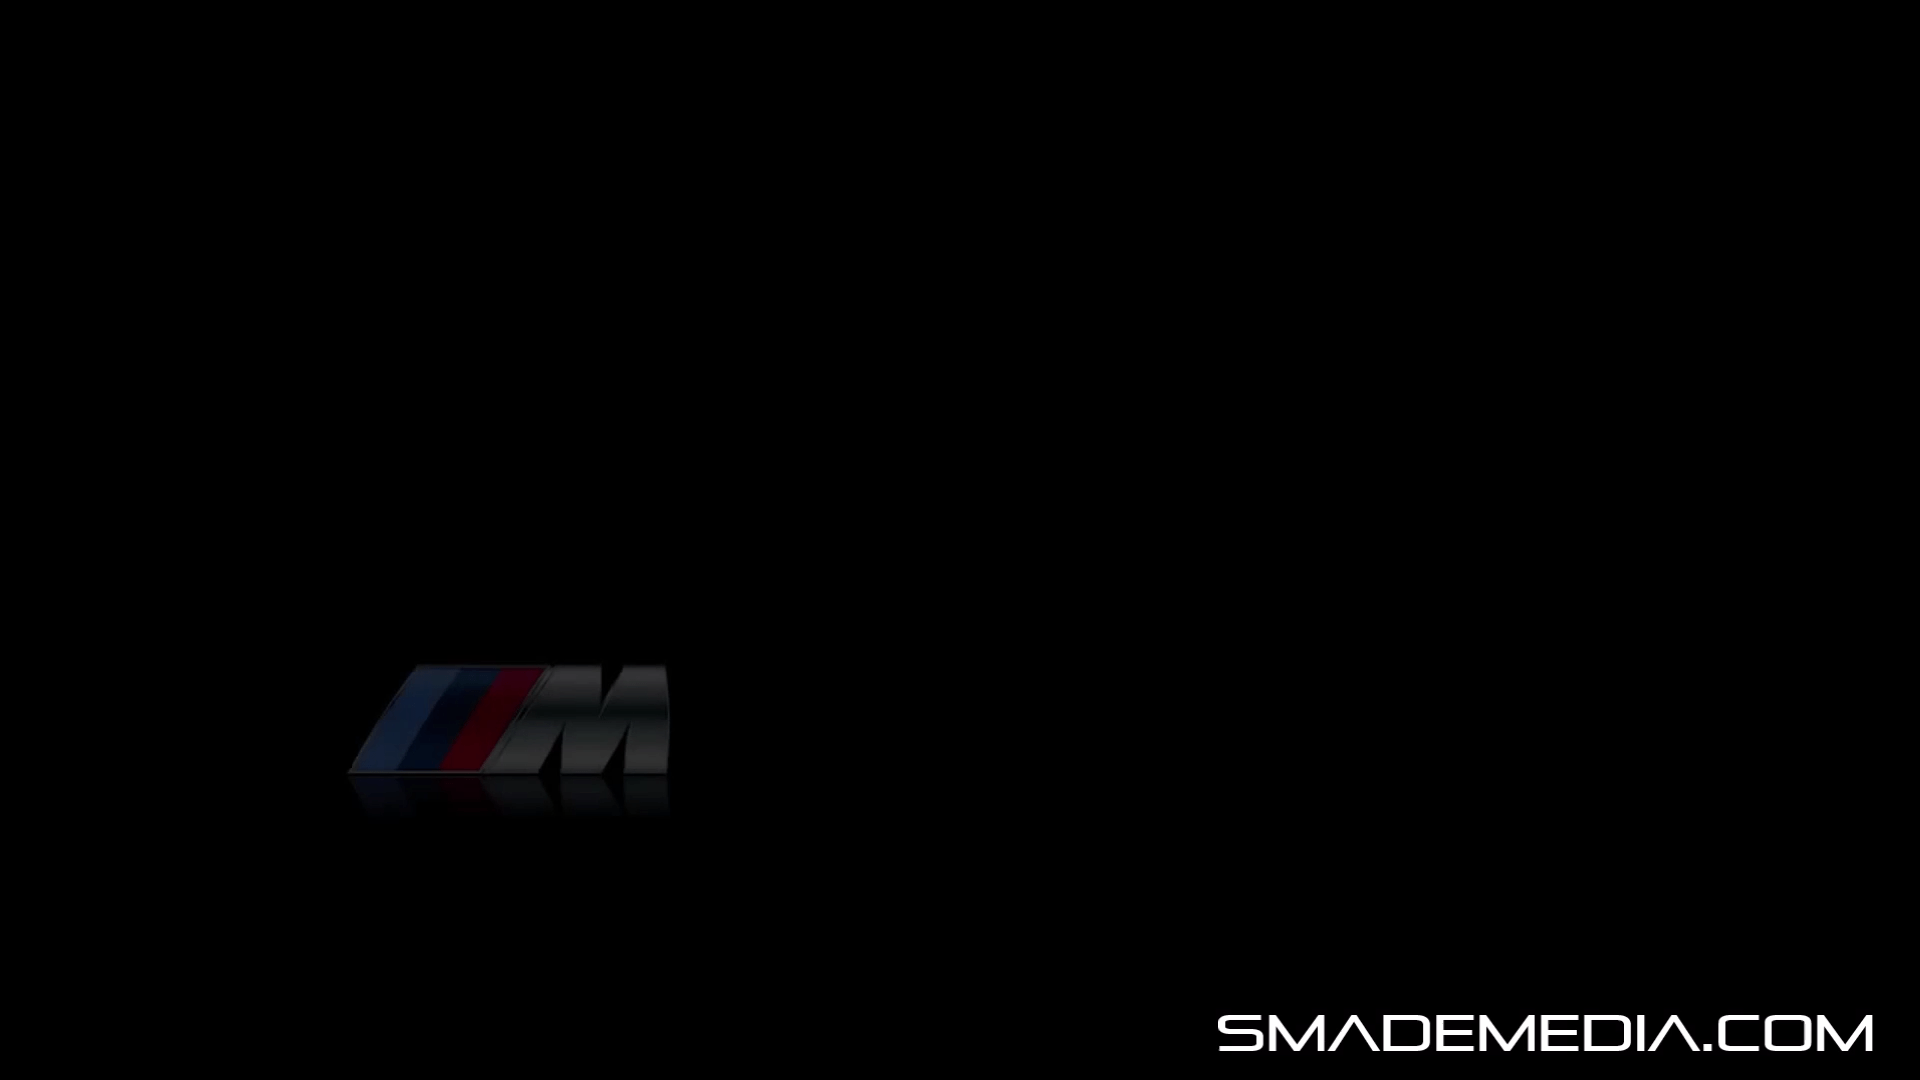 BMW M3 and M4 Teasers - (13) SMADEMEDIA Galleria